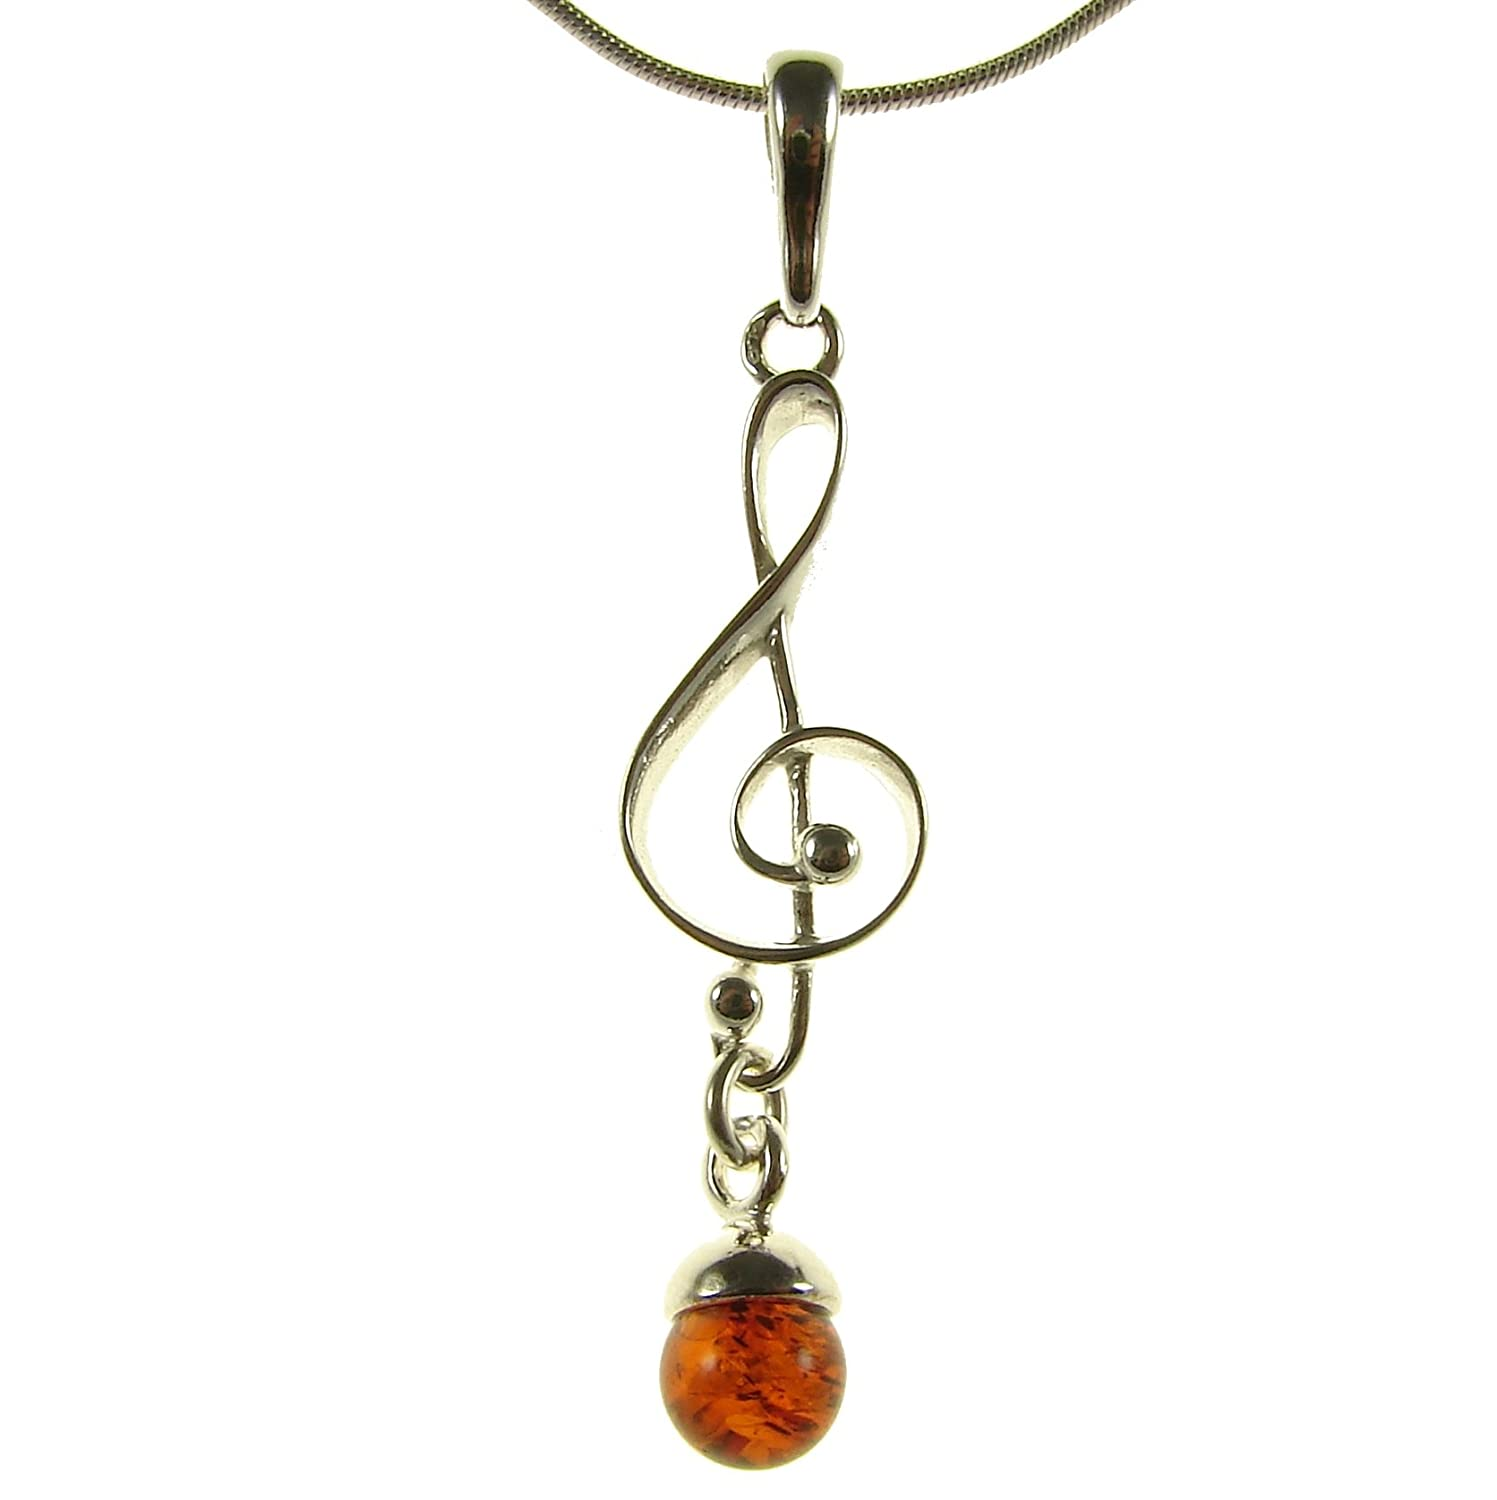 14 16 18 20 22 24 26 28 30 32 34 1mm ITALIAN SNAKE CHAIN BALTIC AMBER AND STERLING SILVER 925 SNAIL PENDANT NECKLACE